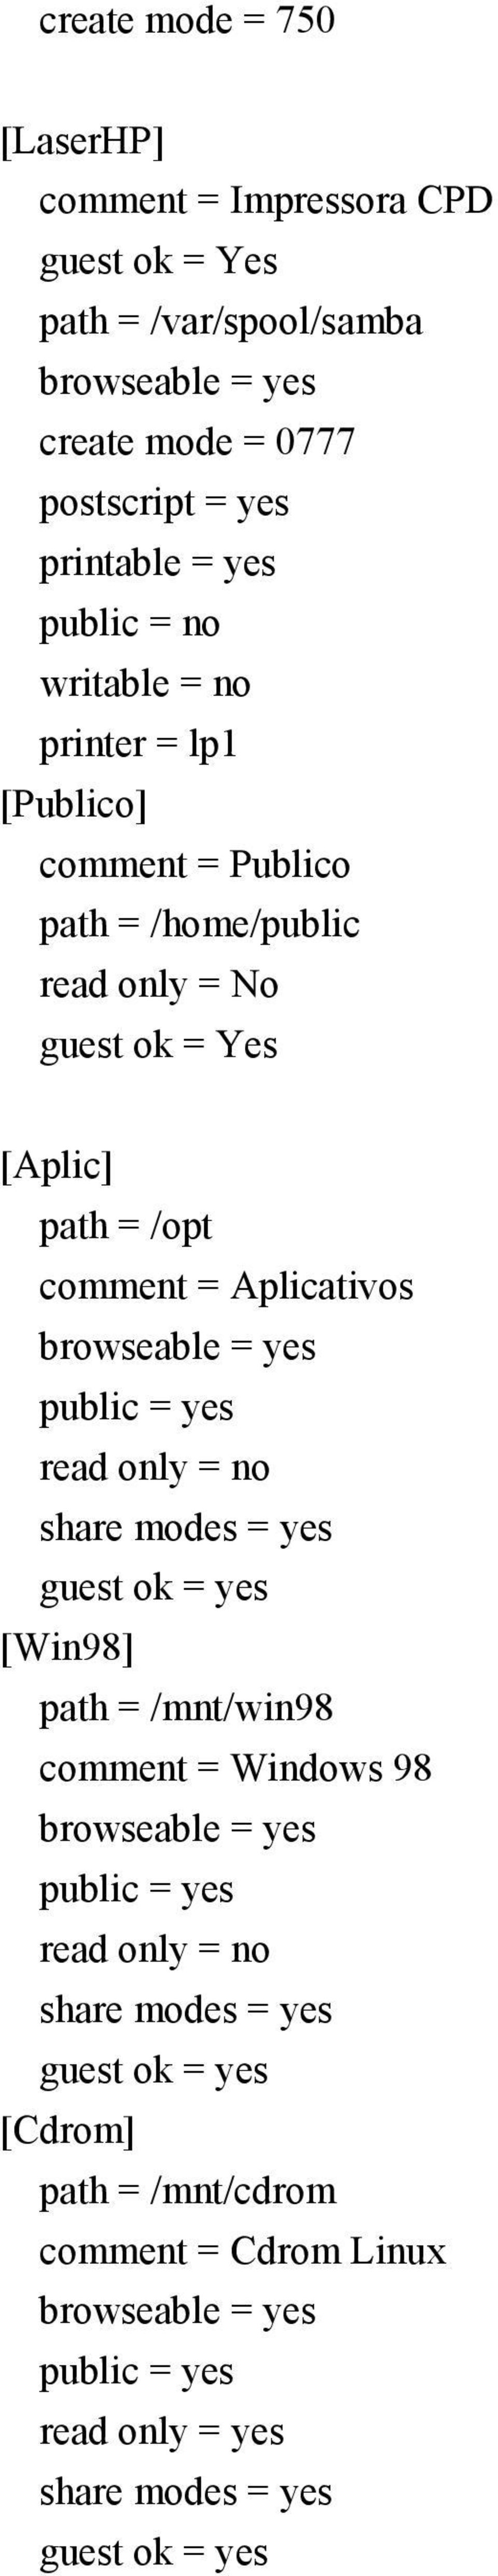 browseable = yes public = yes read only = no share modes = yes guest ok = yes [Win98] path = /mnt/win98 comment = Windows 98 browseable = yes public = yes read